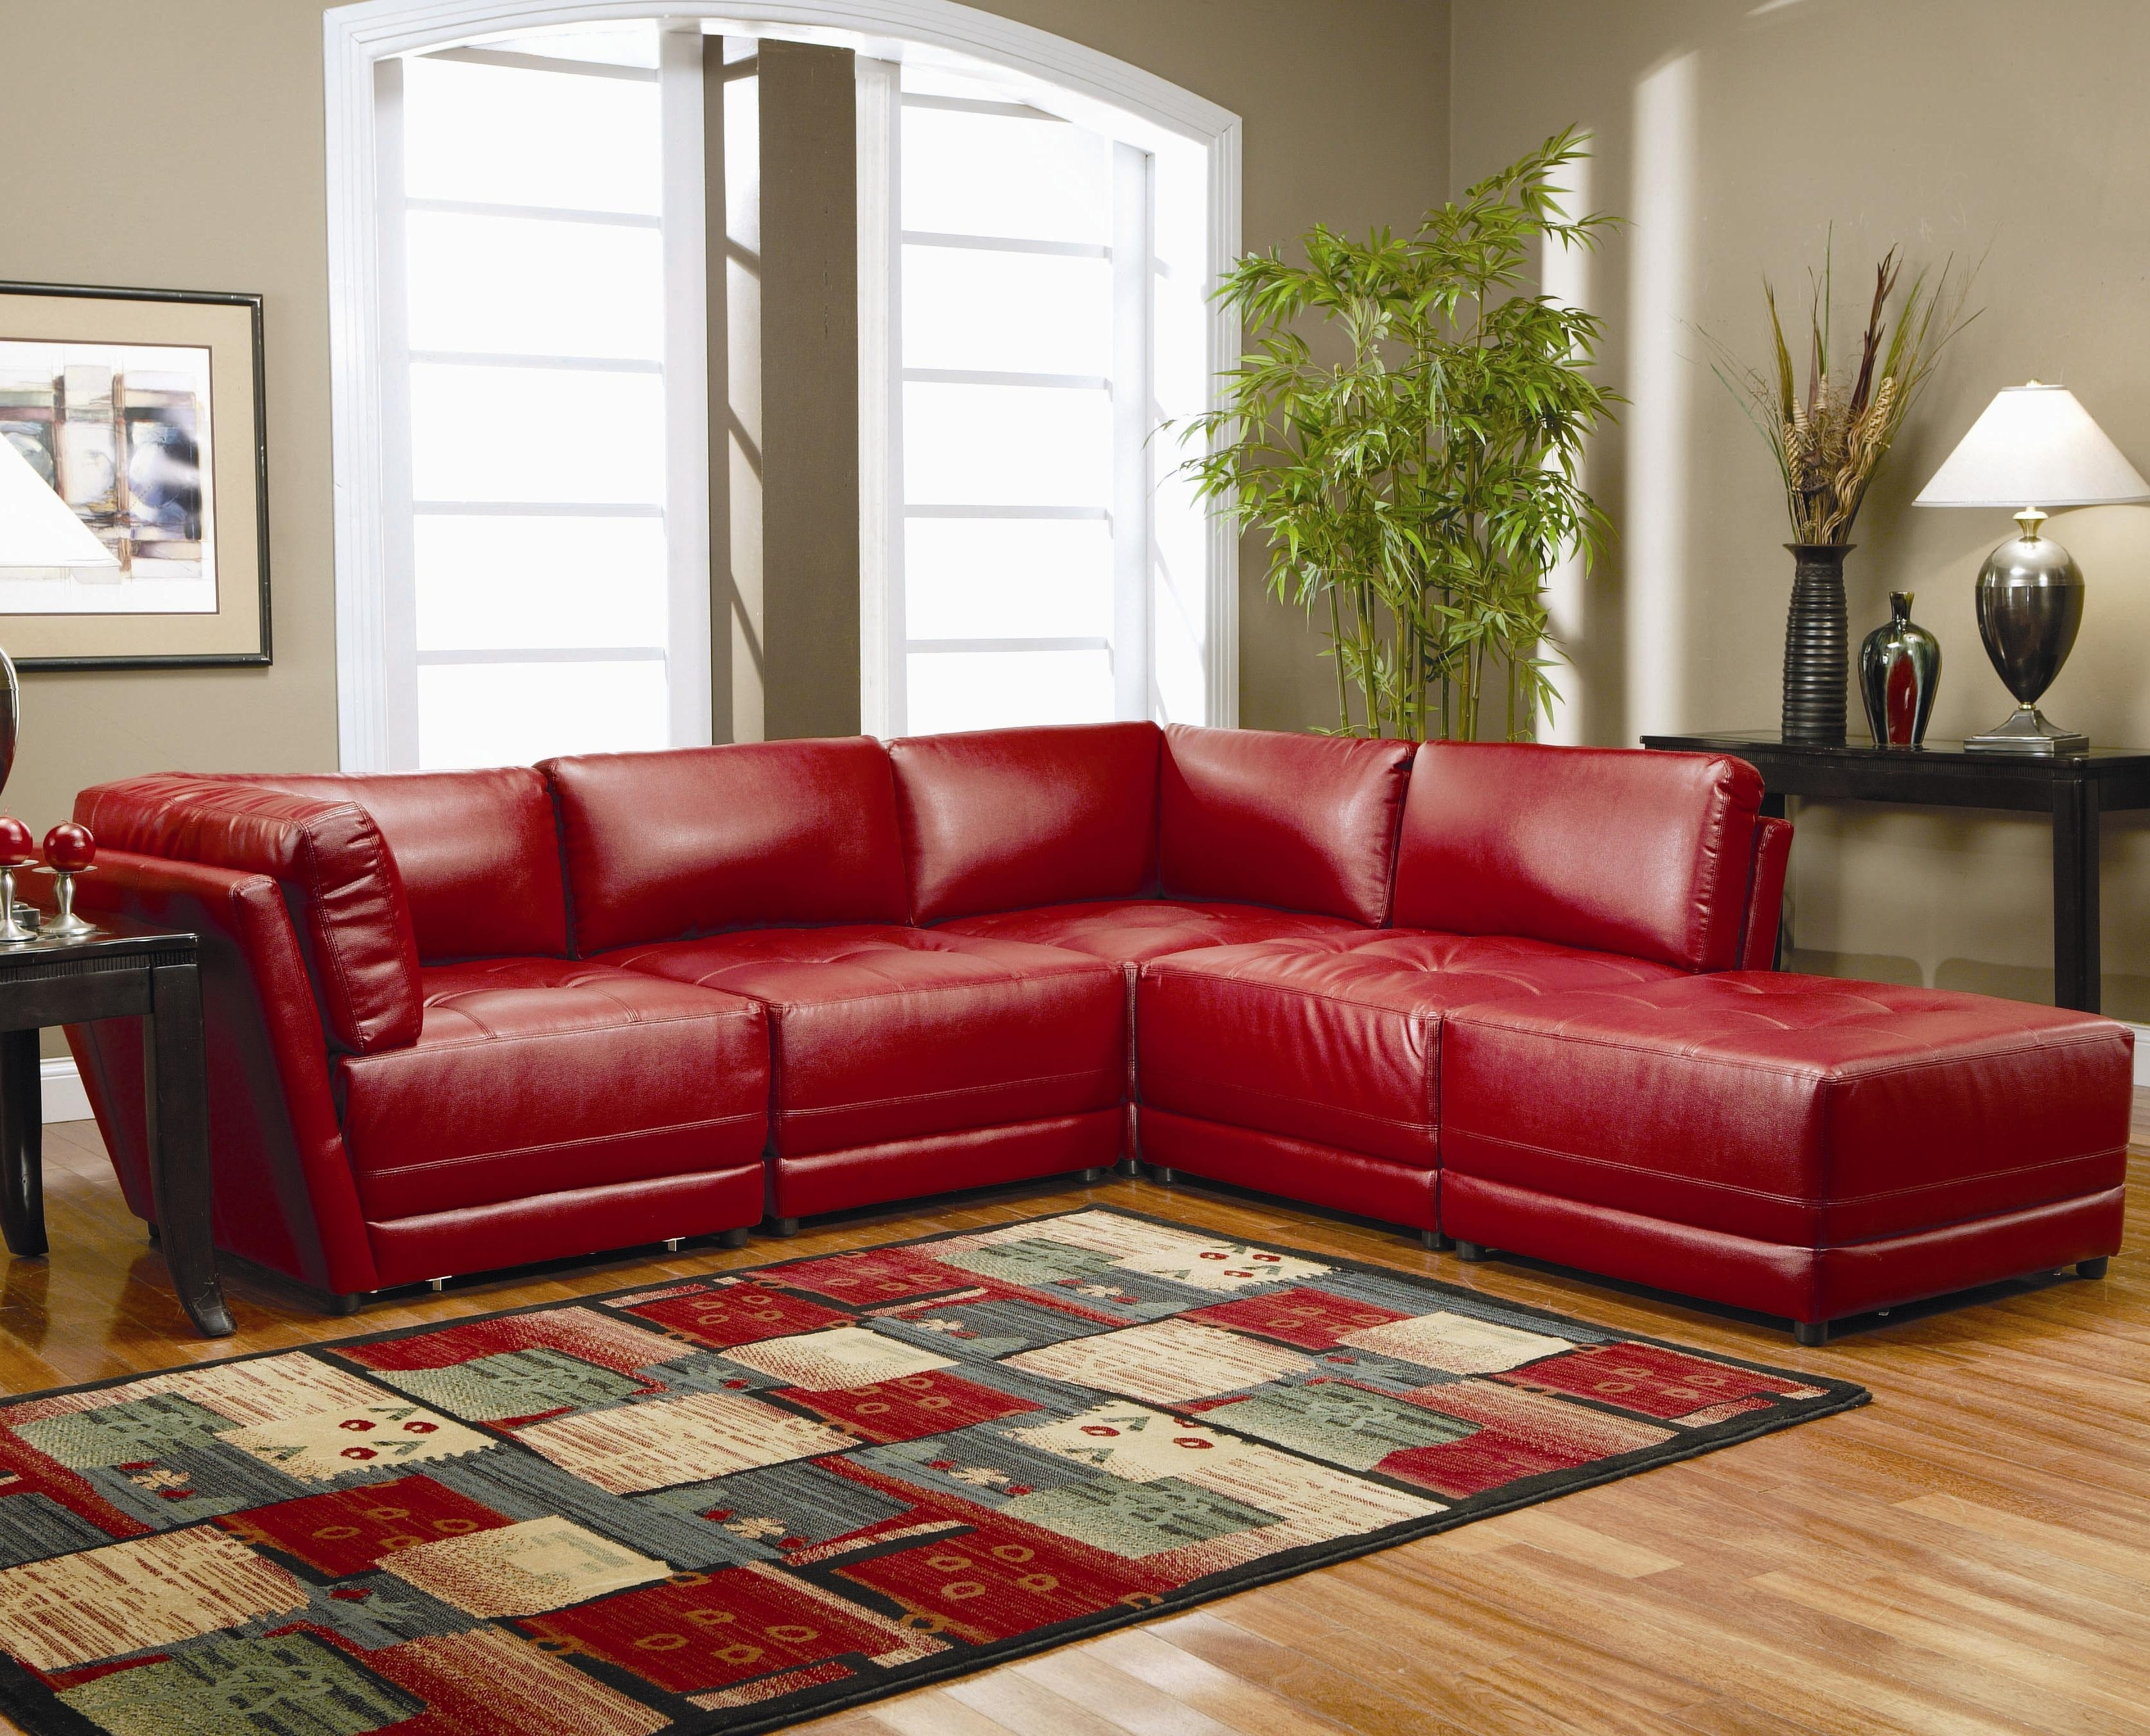 Small Red Leather Sectional Sofas Pertaining To Latest Warm Red Leather Sectional L Shaped Sofa Design Ideas For Living (View 15 of 20)